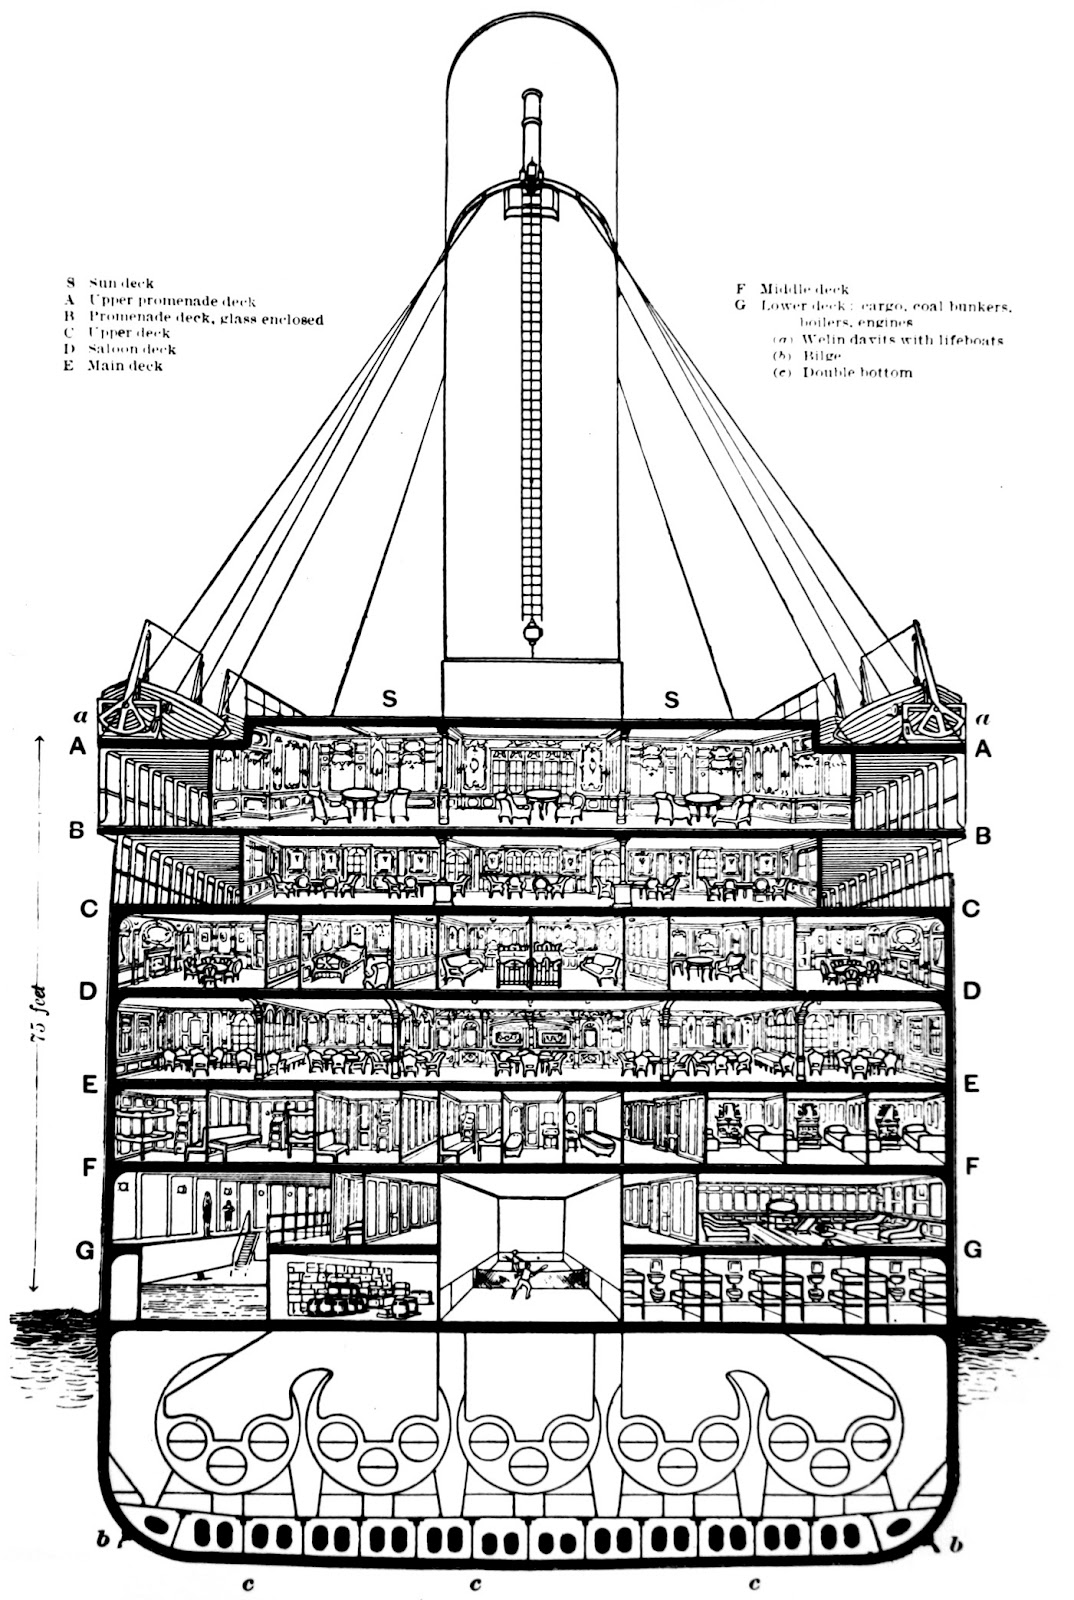 beam loading diagram shipping container wiring diagram hyster pallet jack wiring diagram 7 pin cargo trailer [ 1074 x 1600 Pixel ]